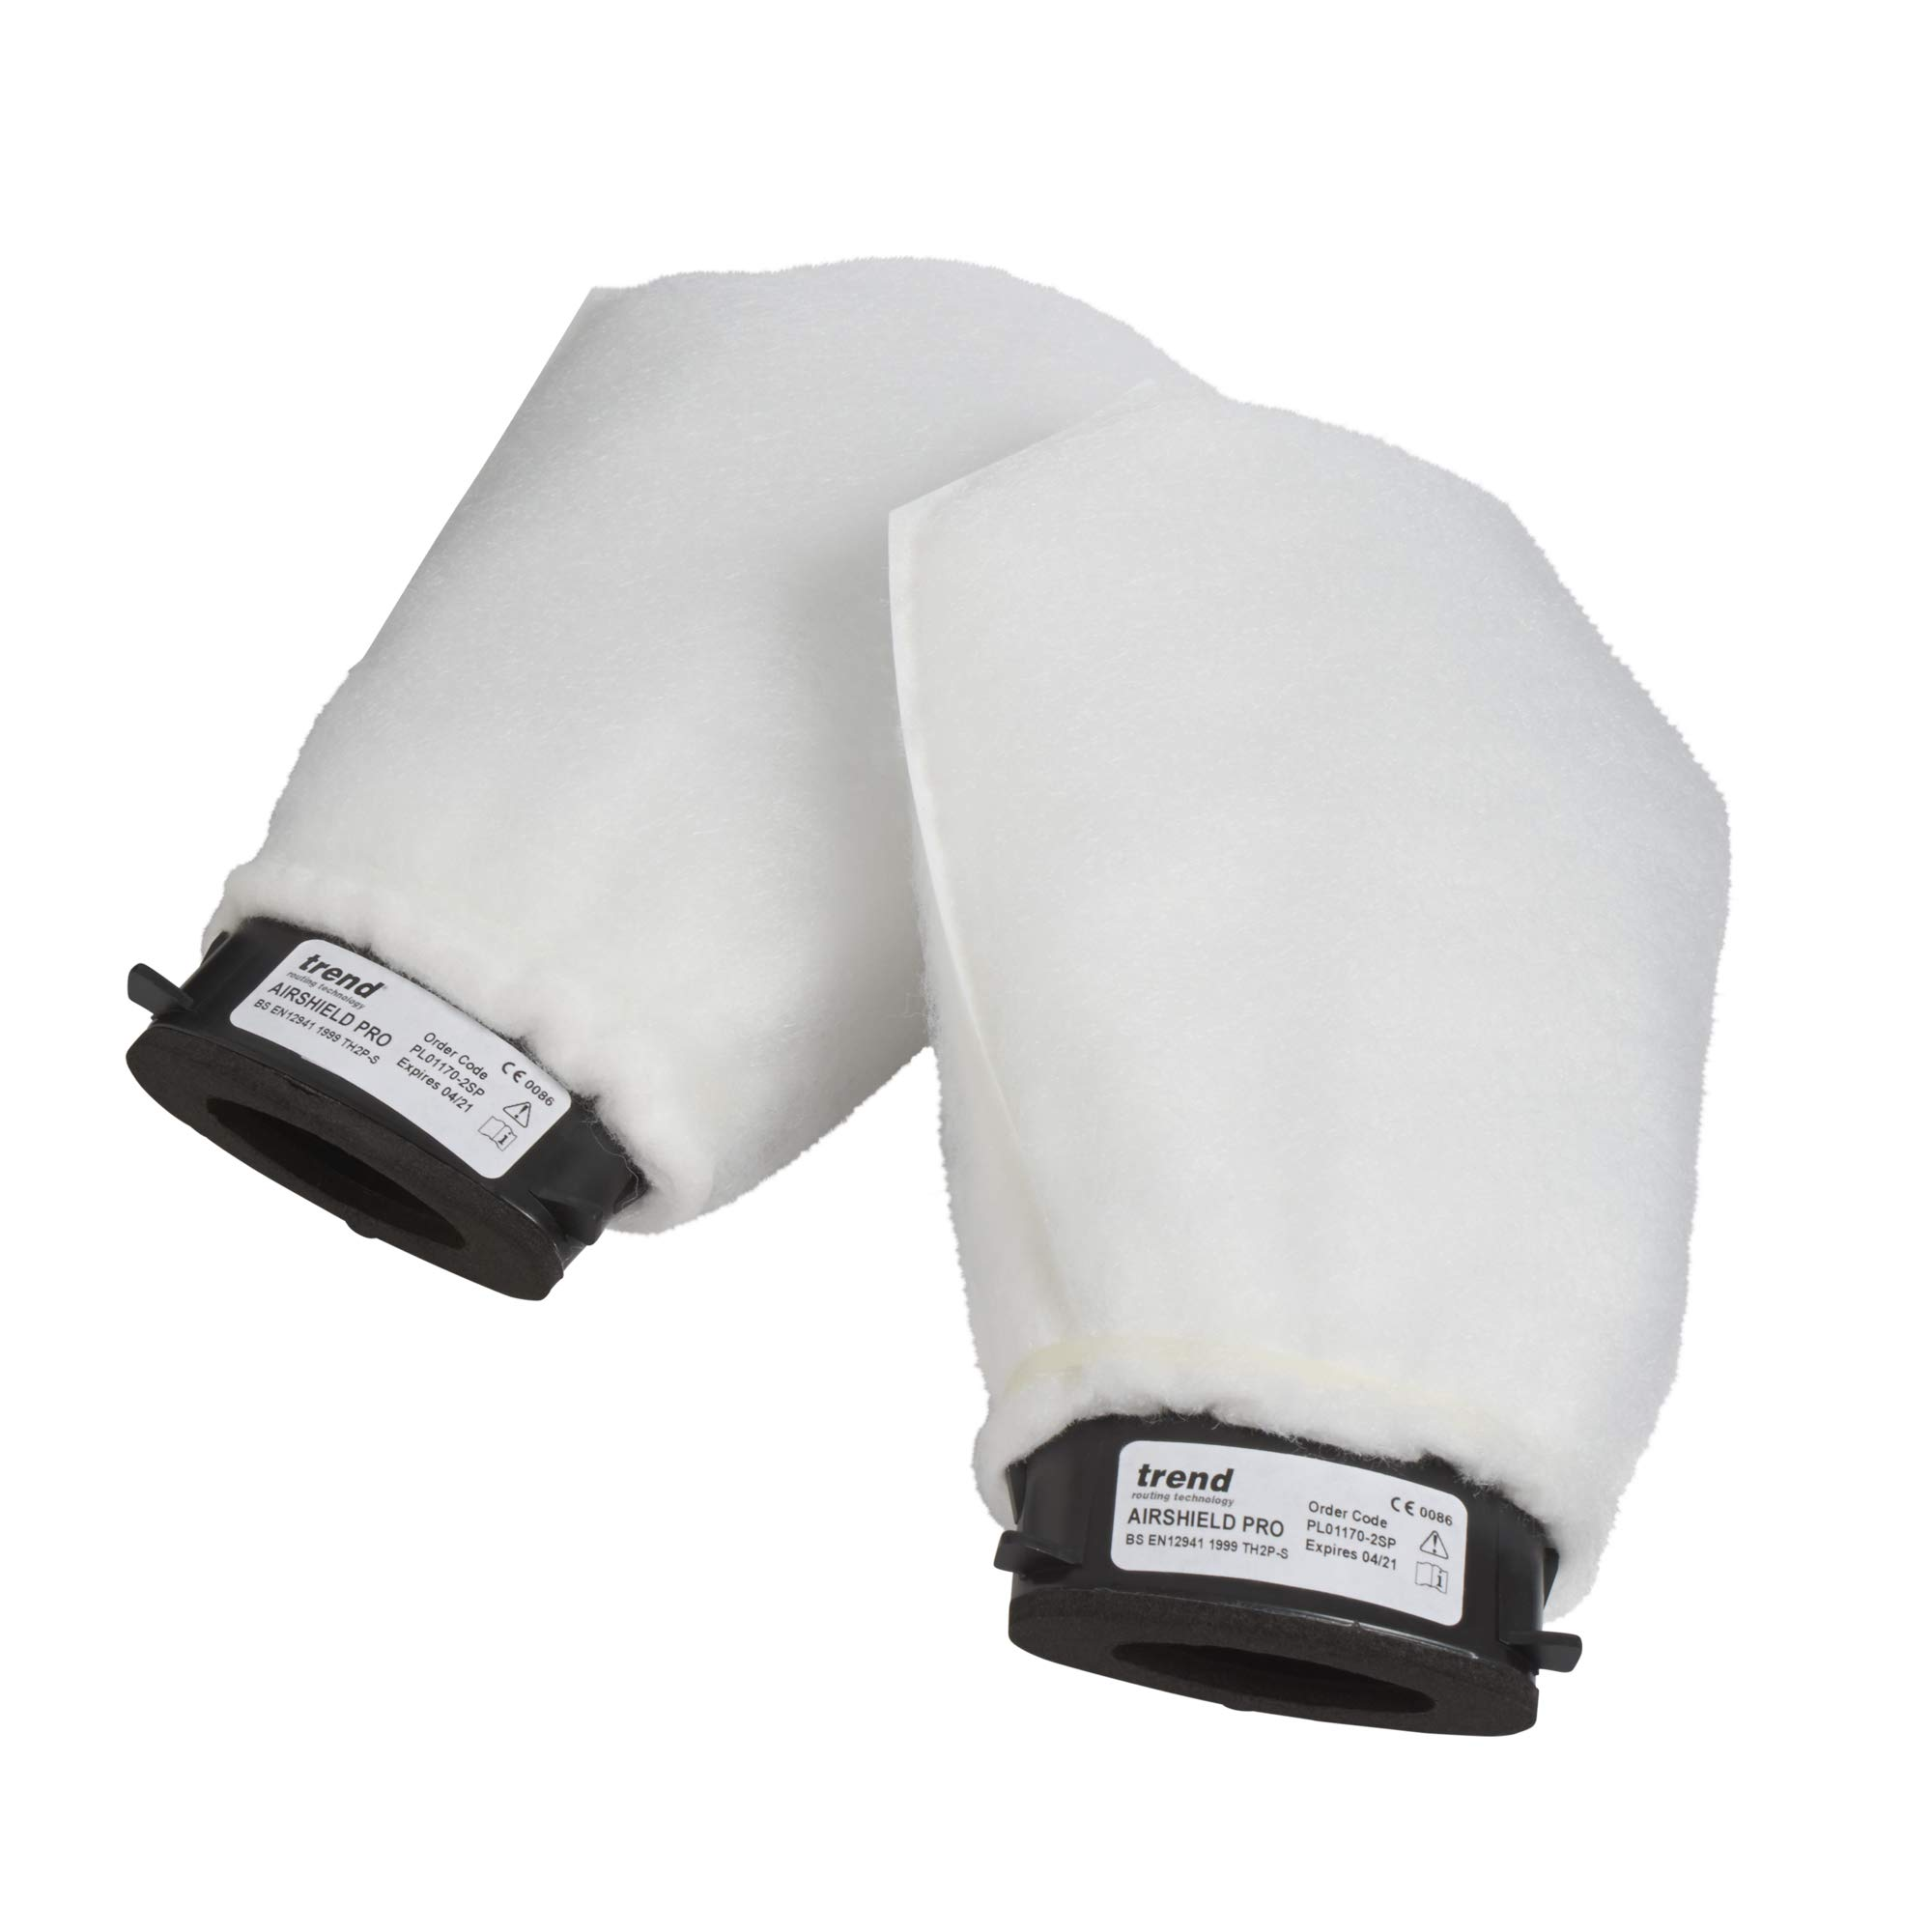 TREND AIRPRO AIR/P/1 THPS2 Pair Replacement Air Filters by TREND